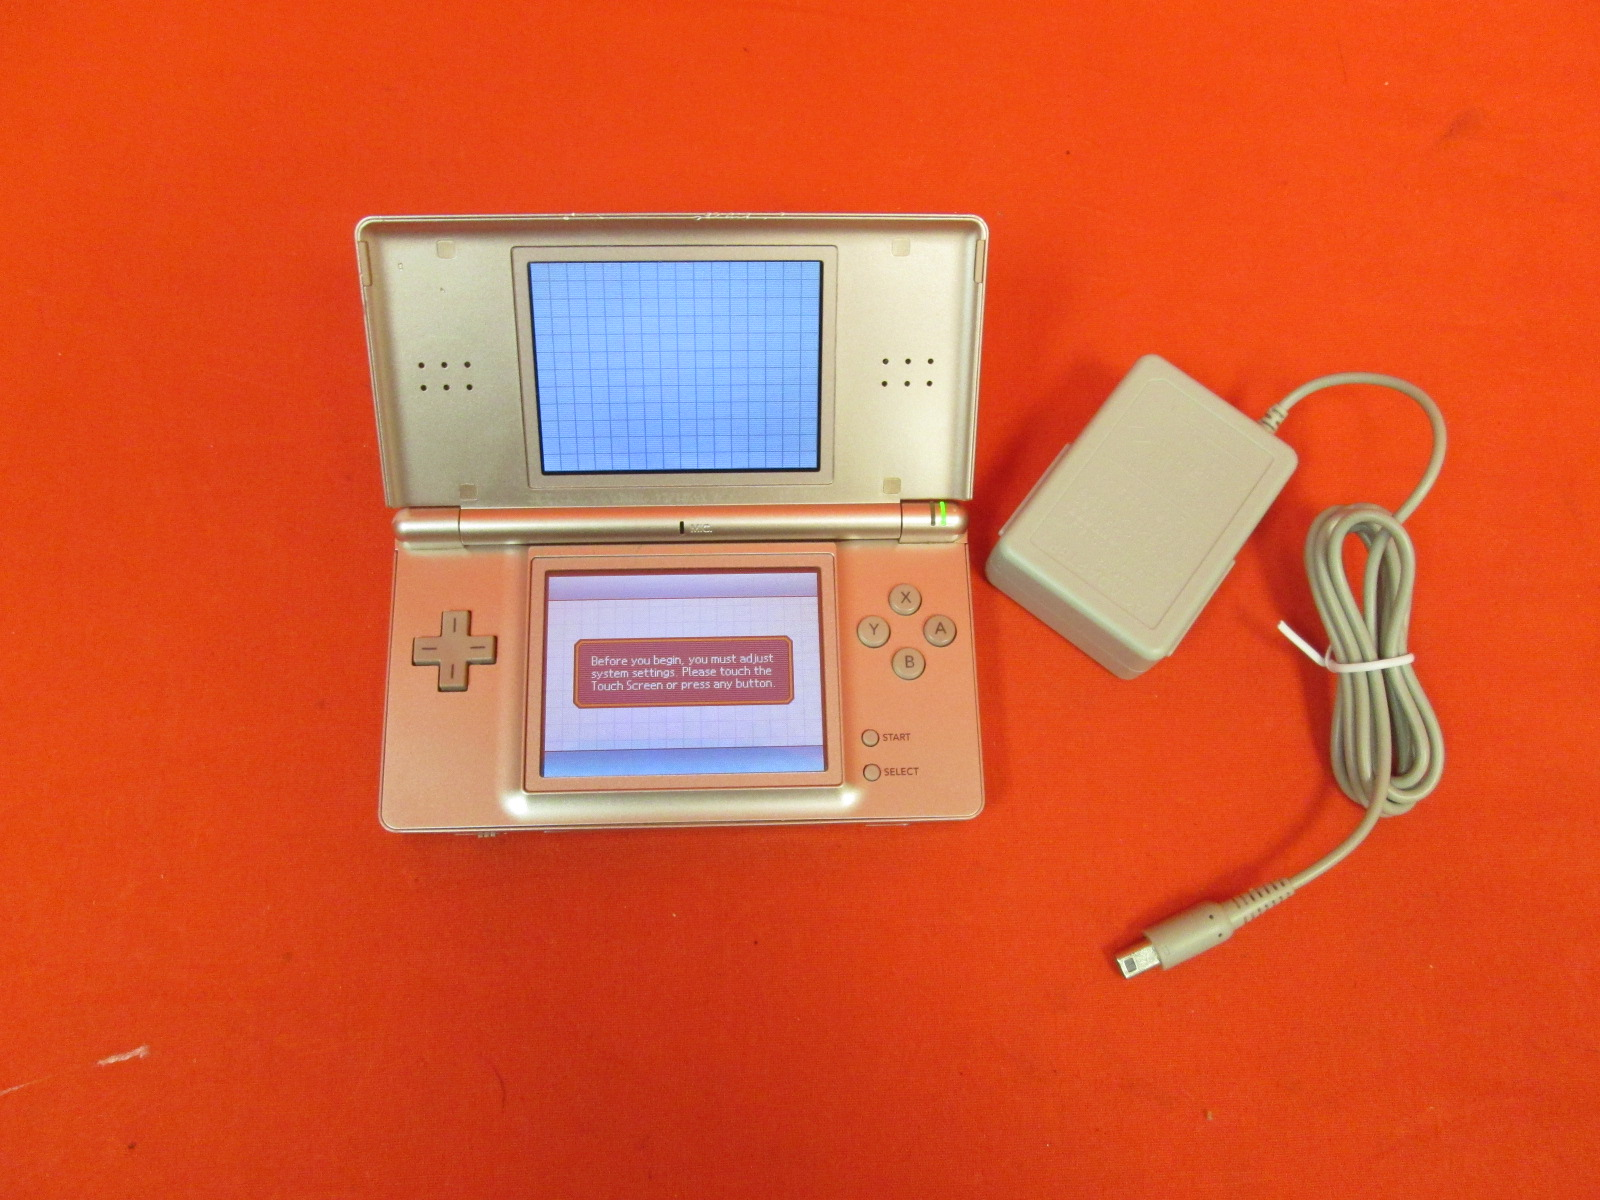 Nintendo DS Lite Coral Pink Handheld Video Game Console